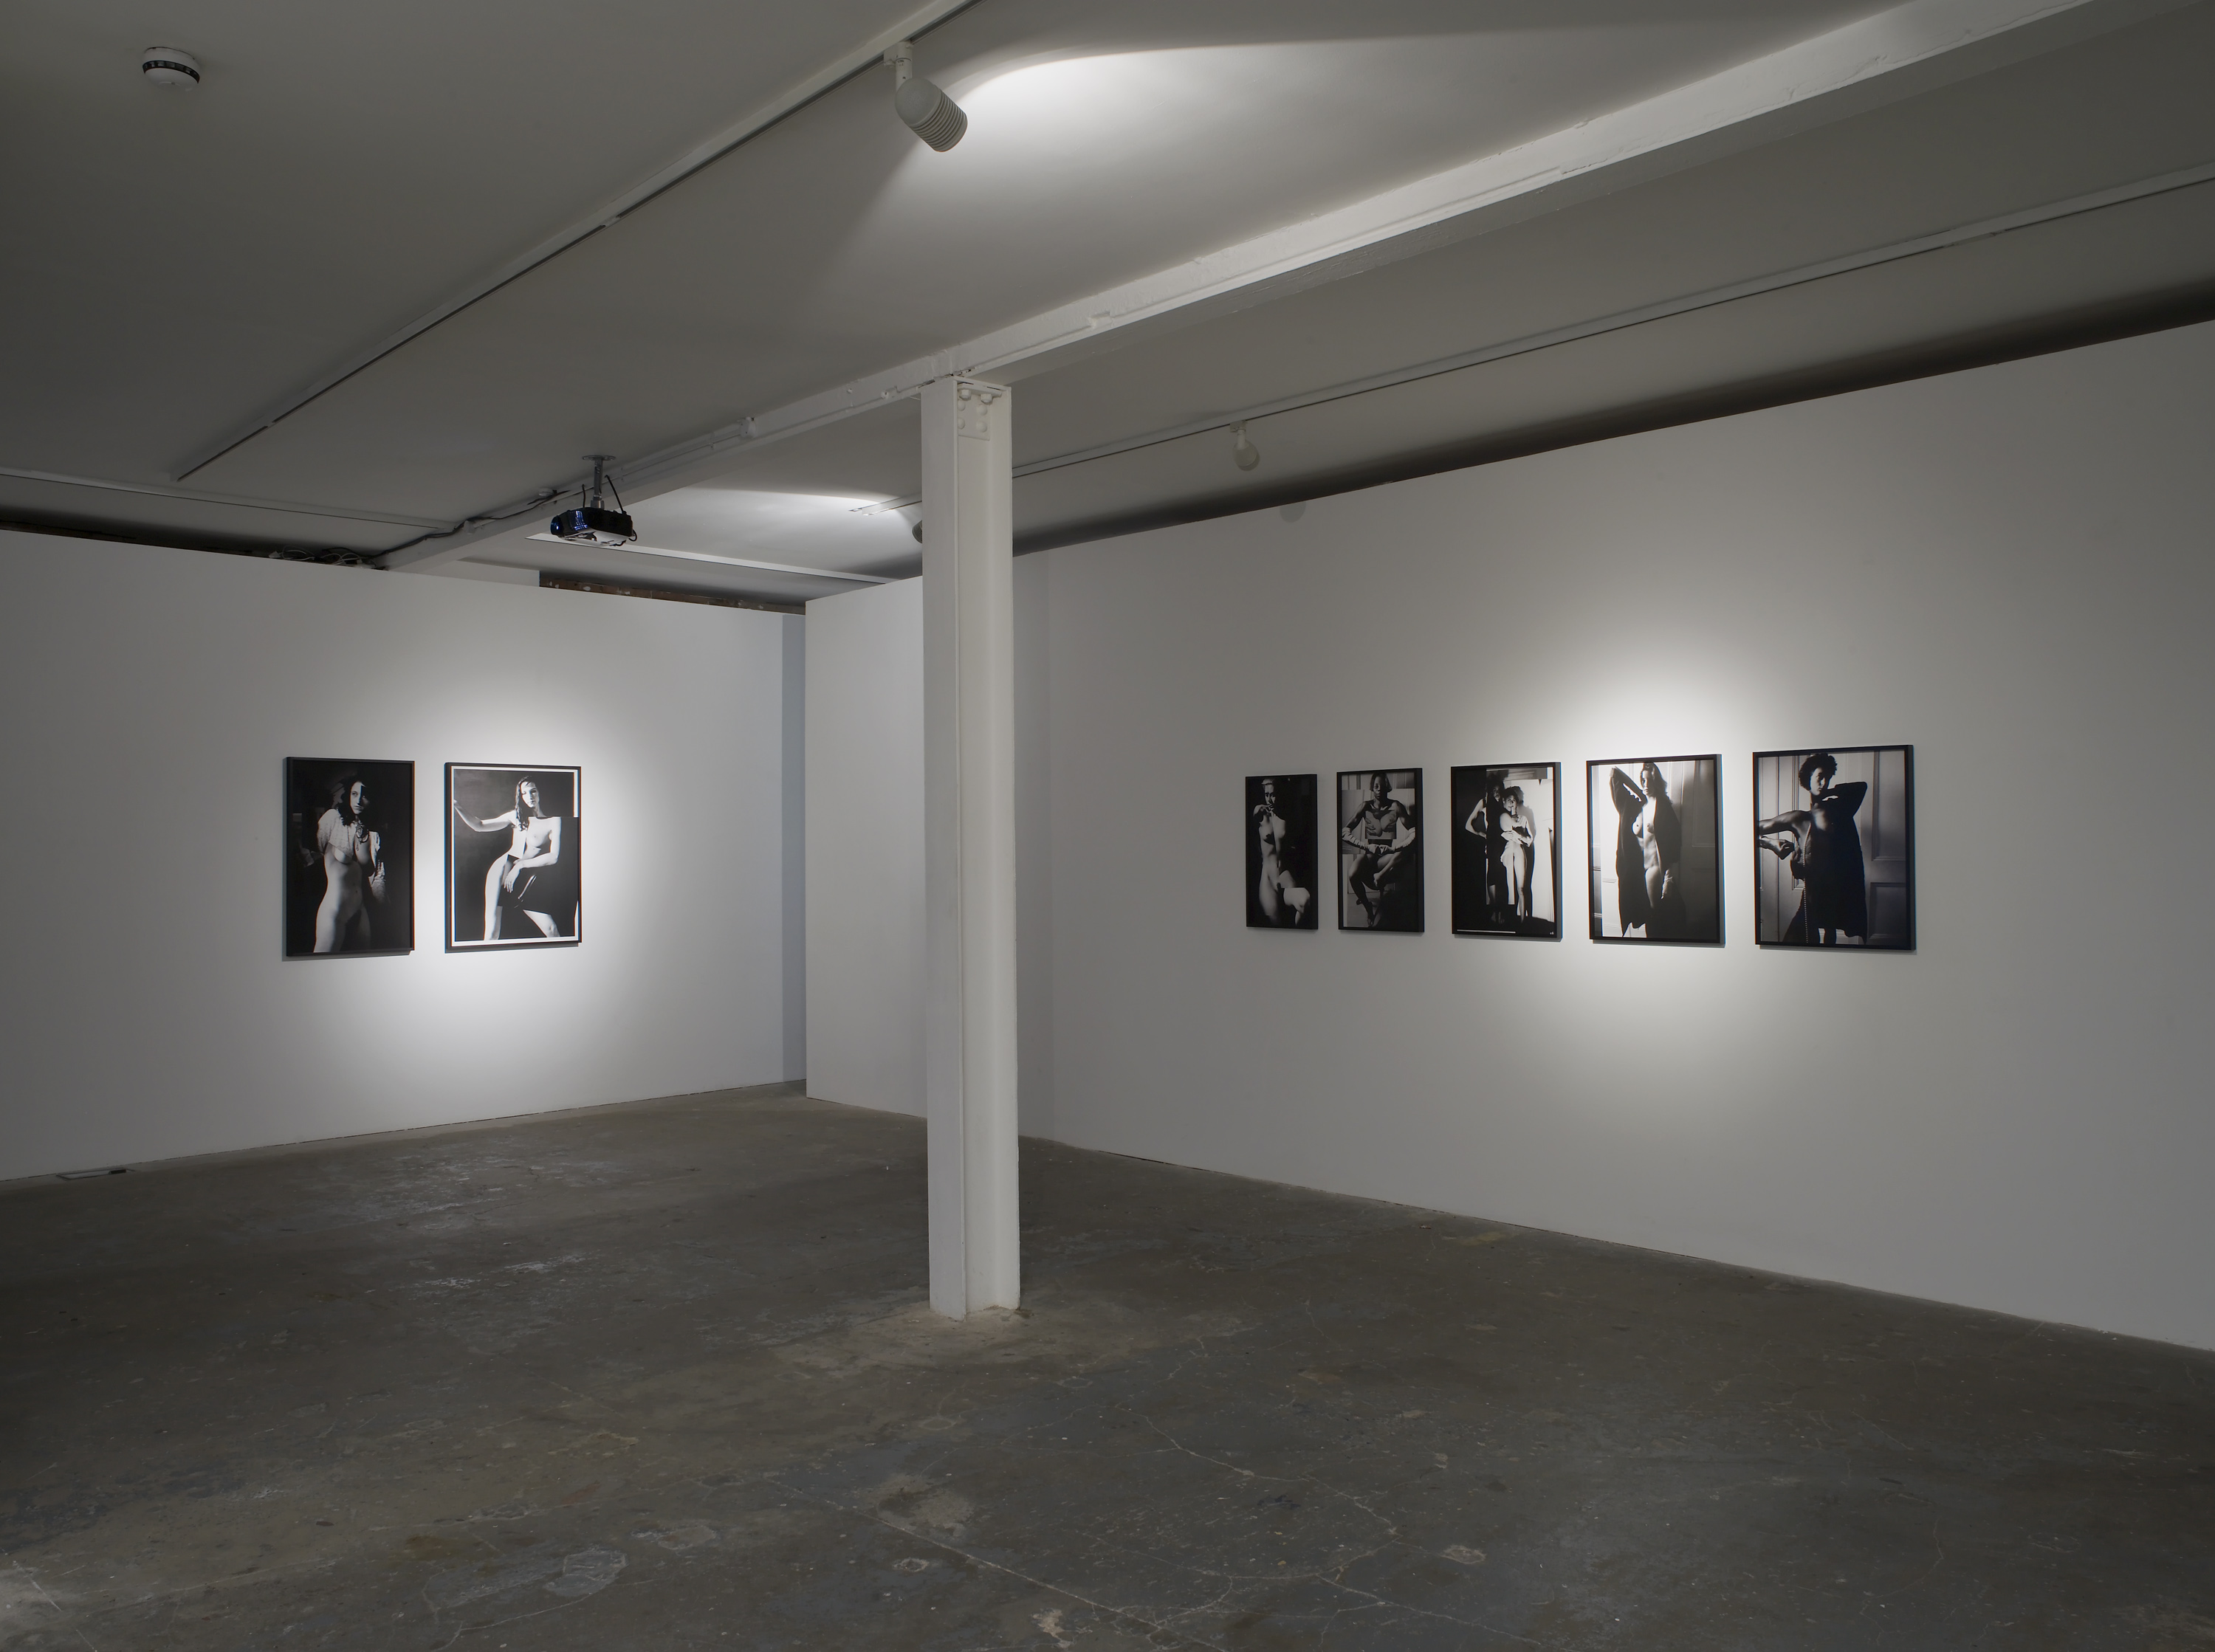 Stephen Dwoskin, 2015, Vilma Gold, London, installation view. Stephen Dwoskin